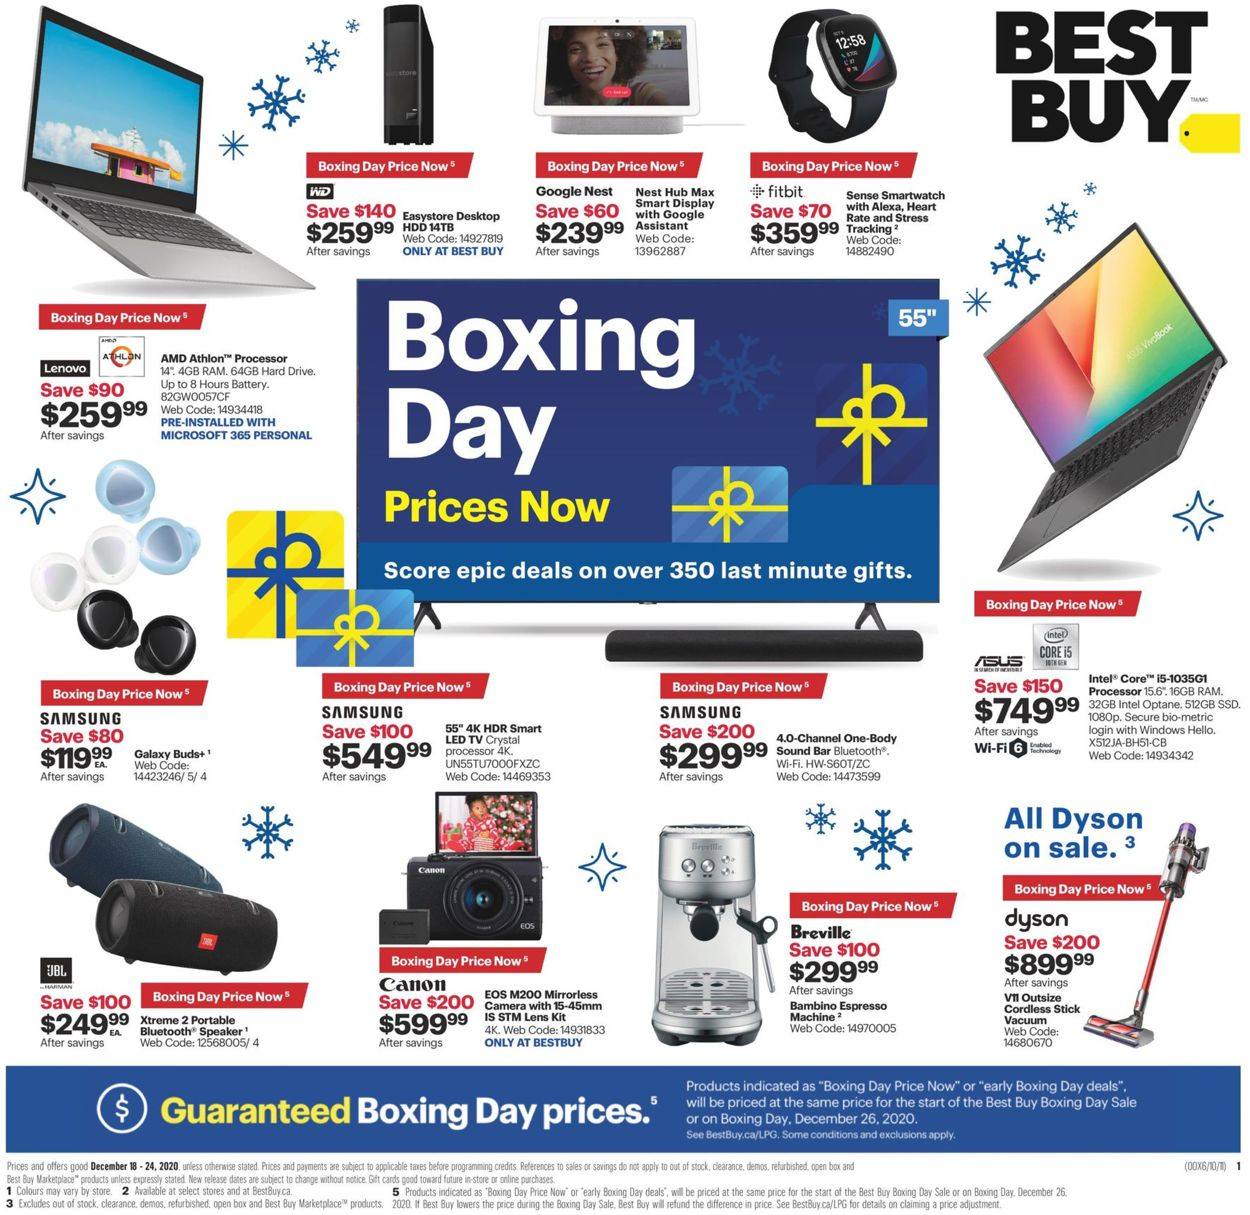 Best Buy - Boxing Day 2020 Flyer - 12/18-12/24/2020